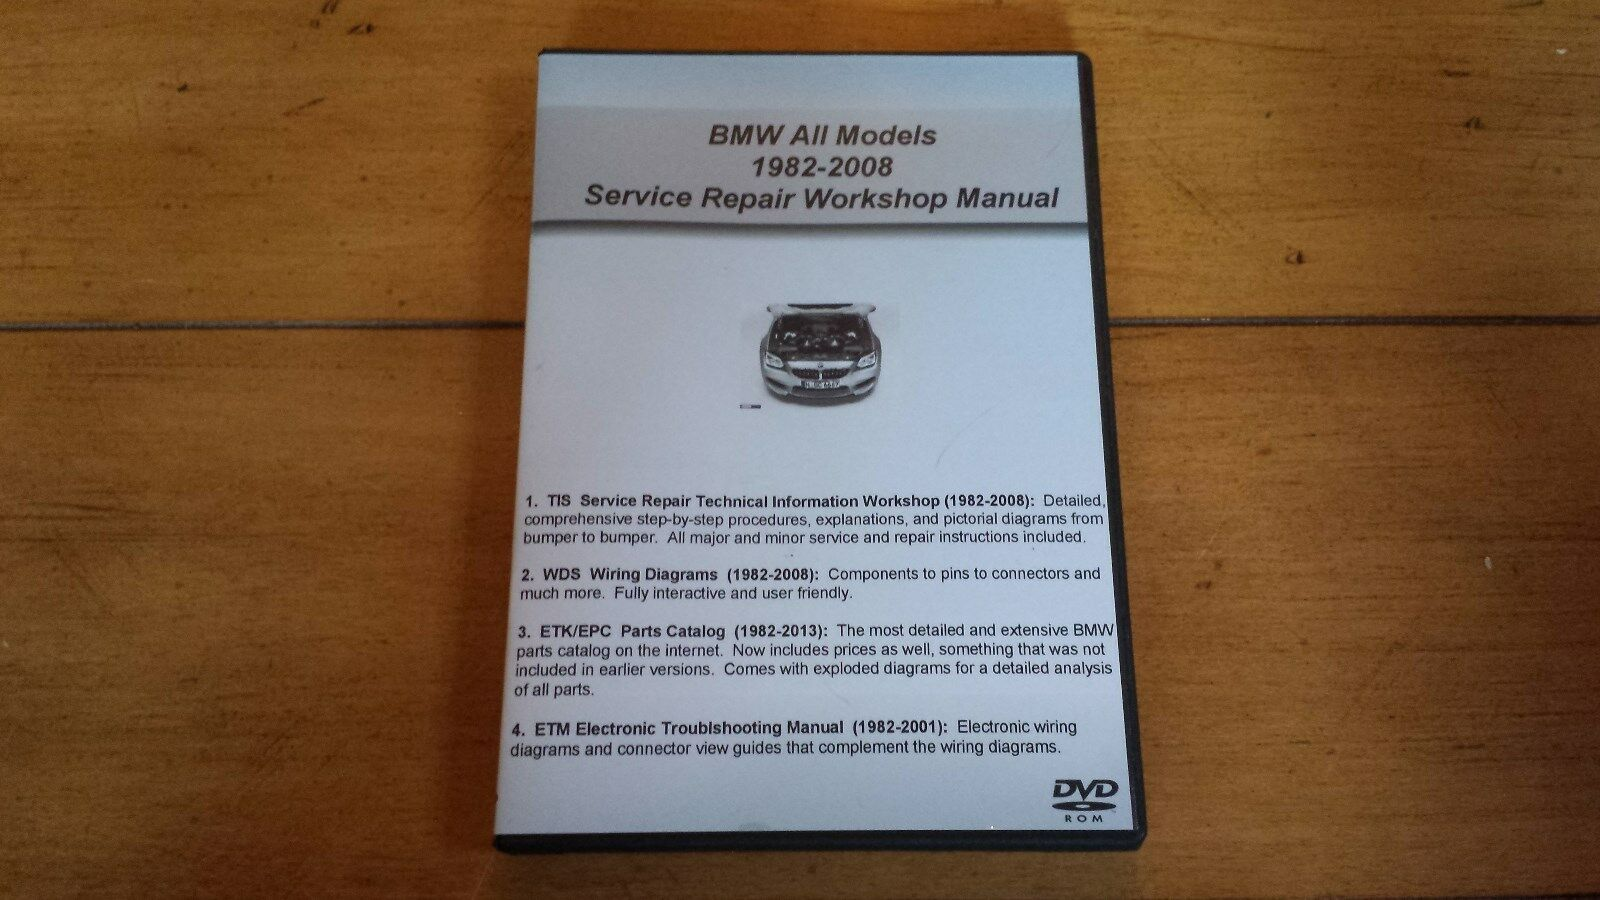 Bmw E65 Wiring Diagram Detailed Diagrams E66 Engine Service Repair Workshop Manual 7 Series E32 E38 On Dvd